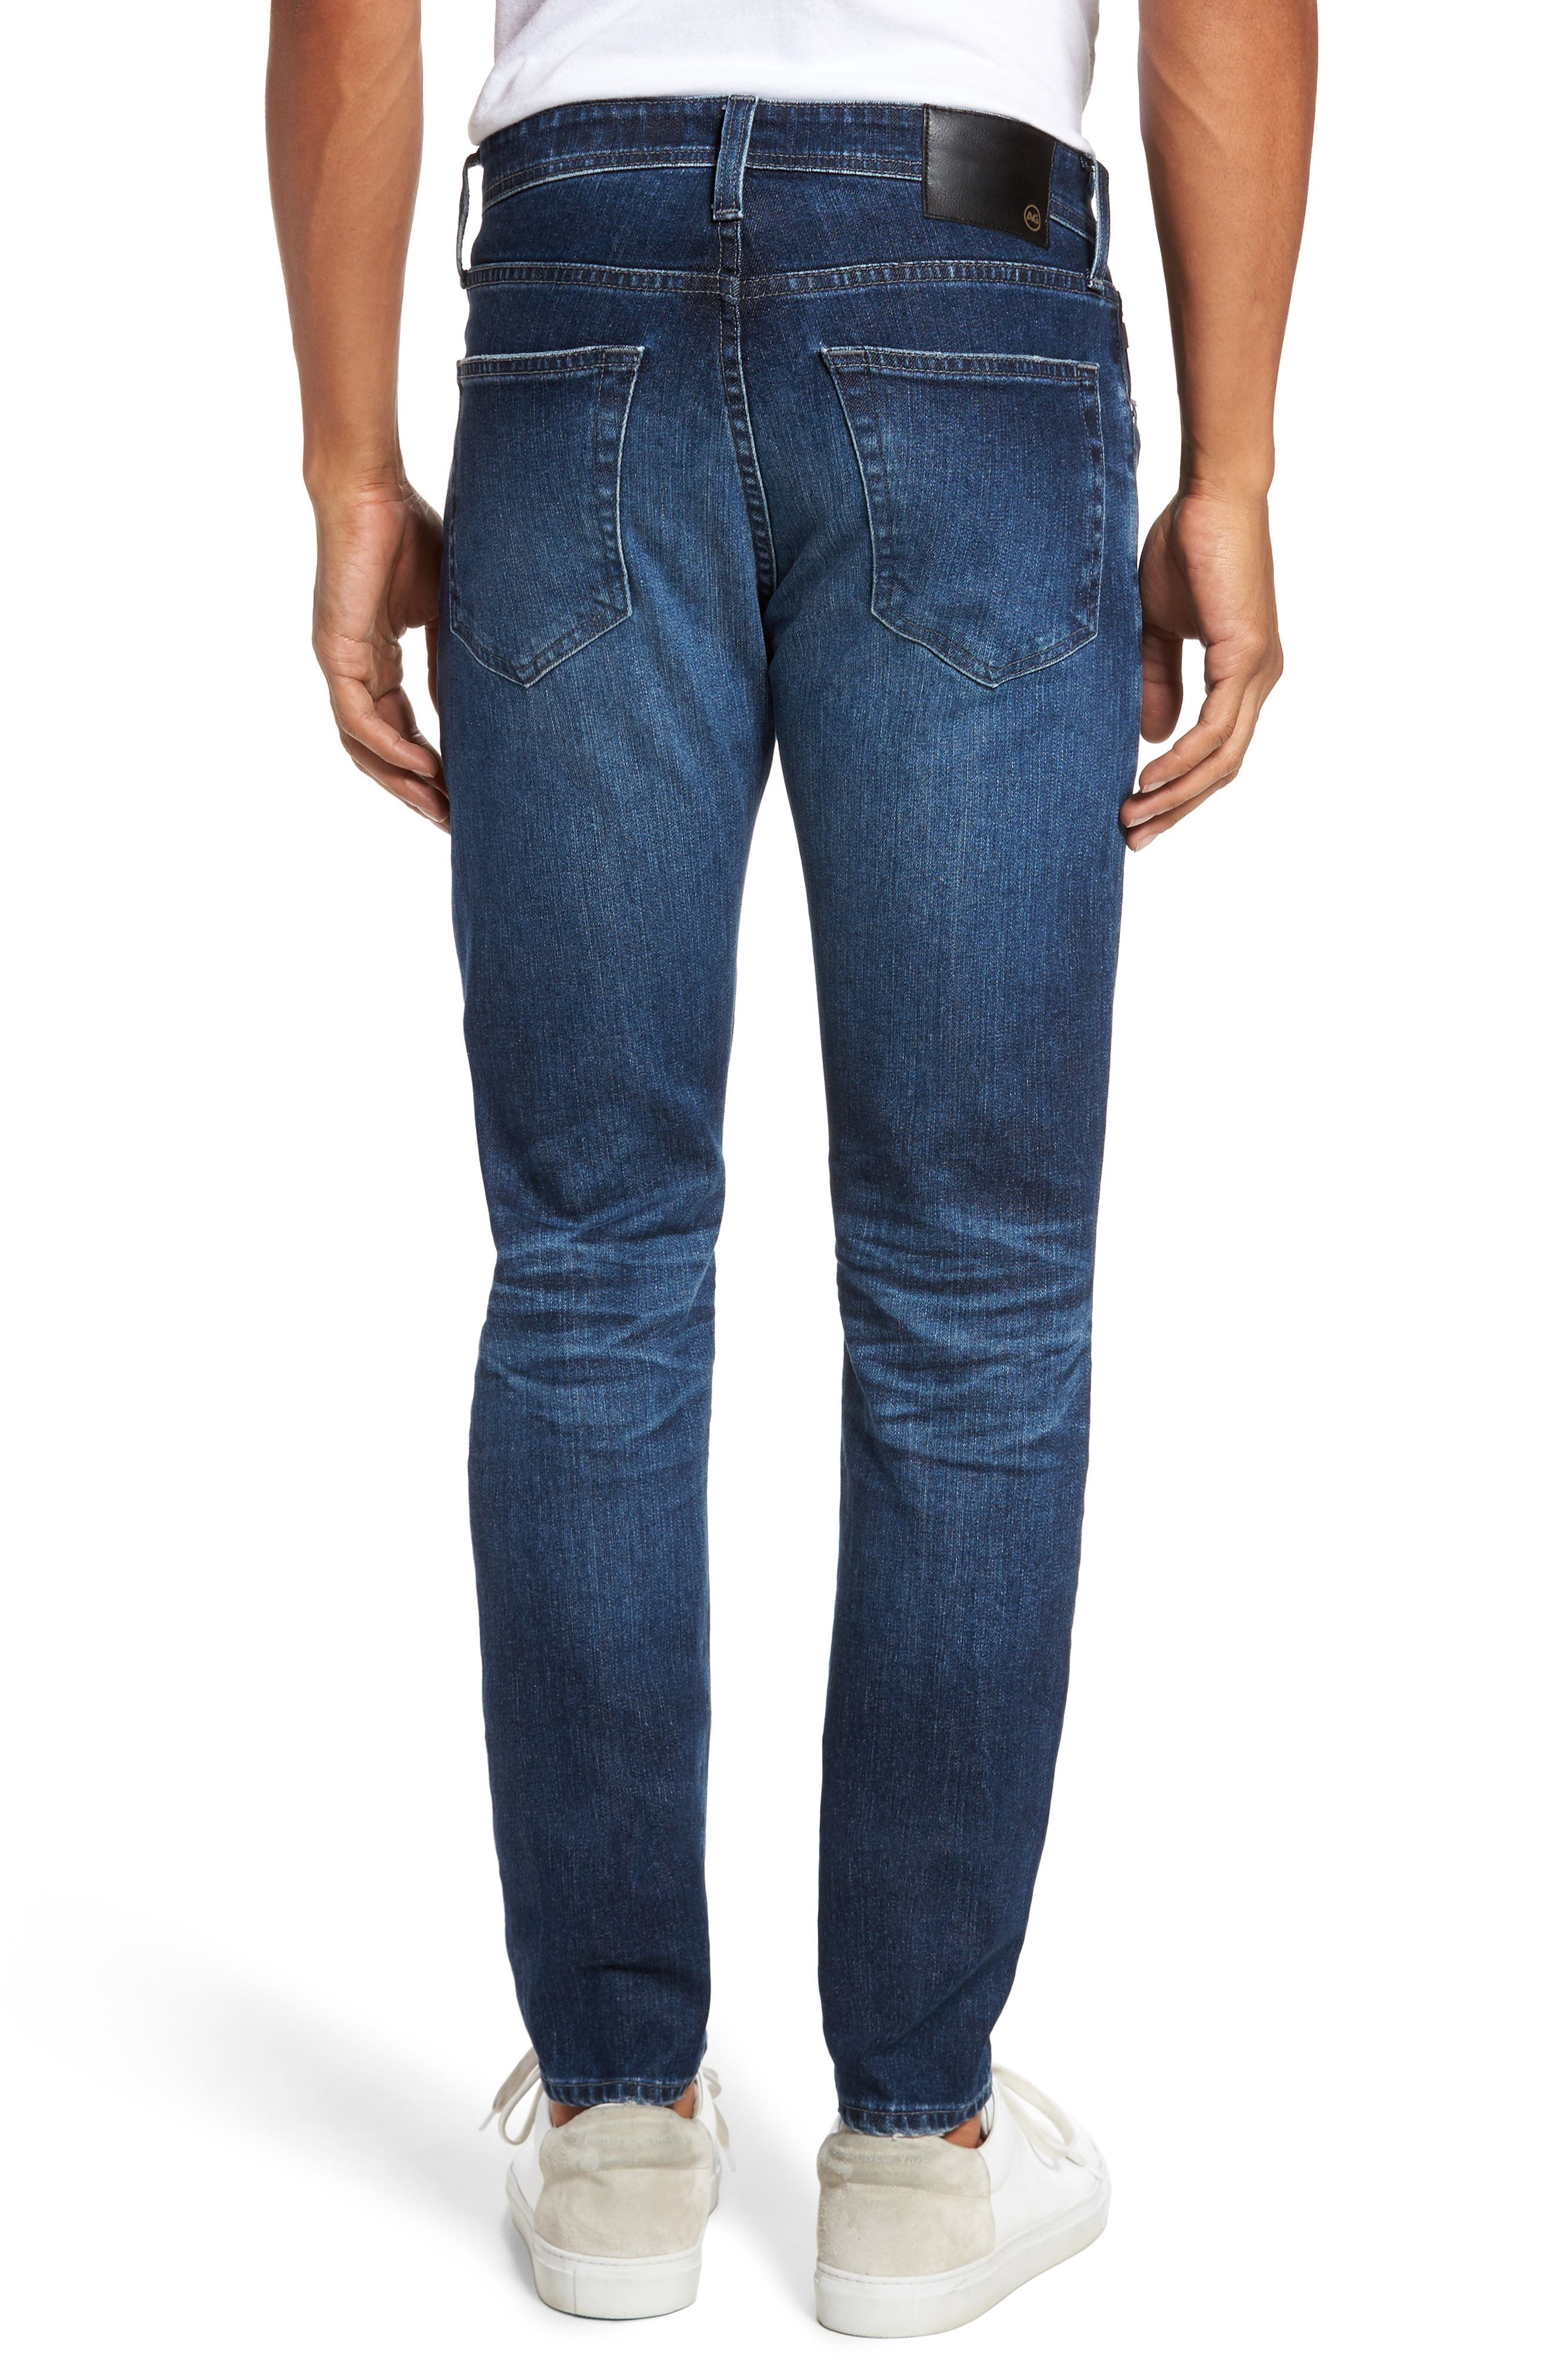 Stockton Skinny Fit Jeans,                             Alternate thumbnail 2, color,                             7 Years Blue Spire